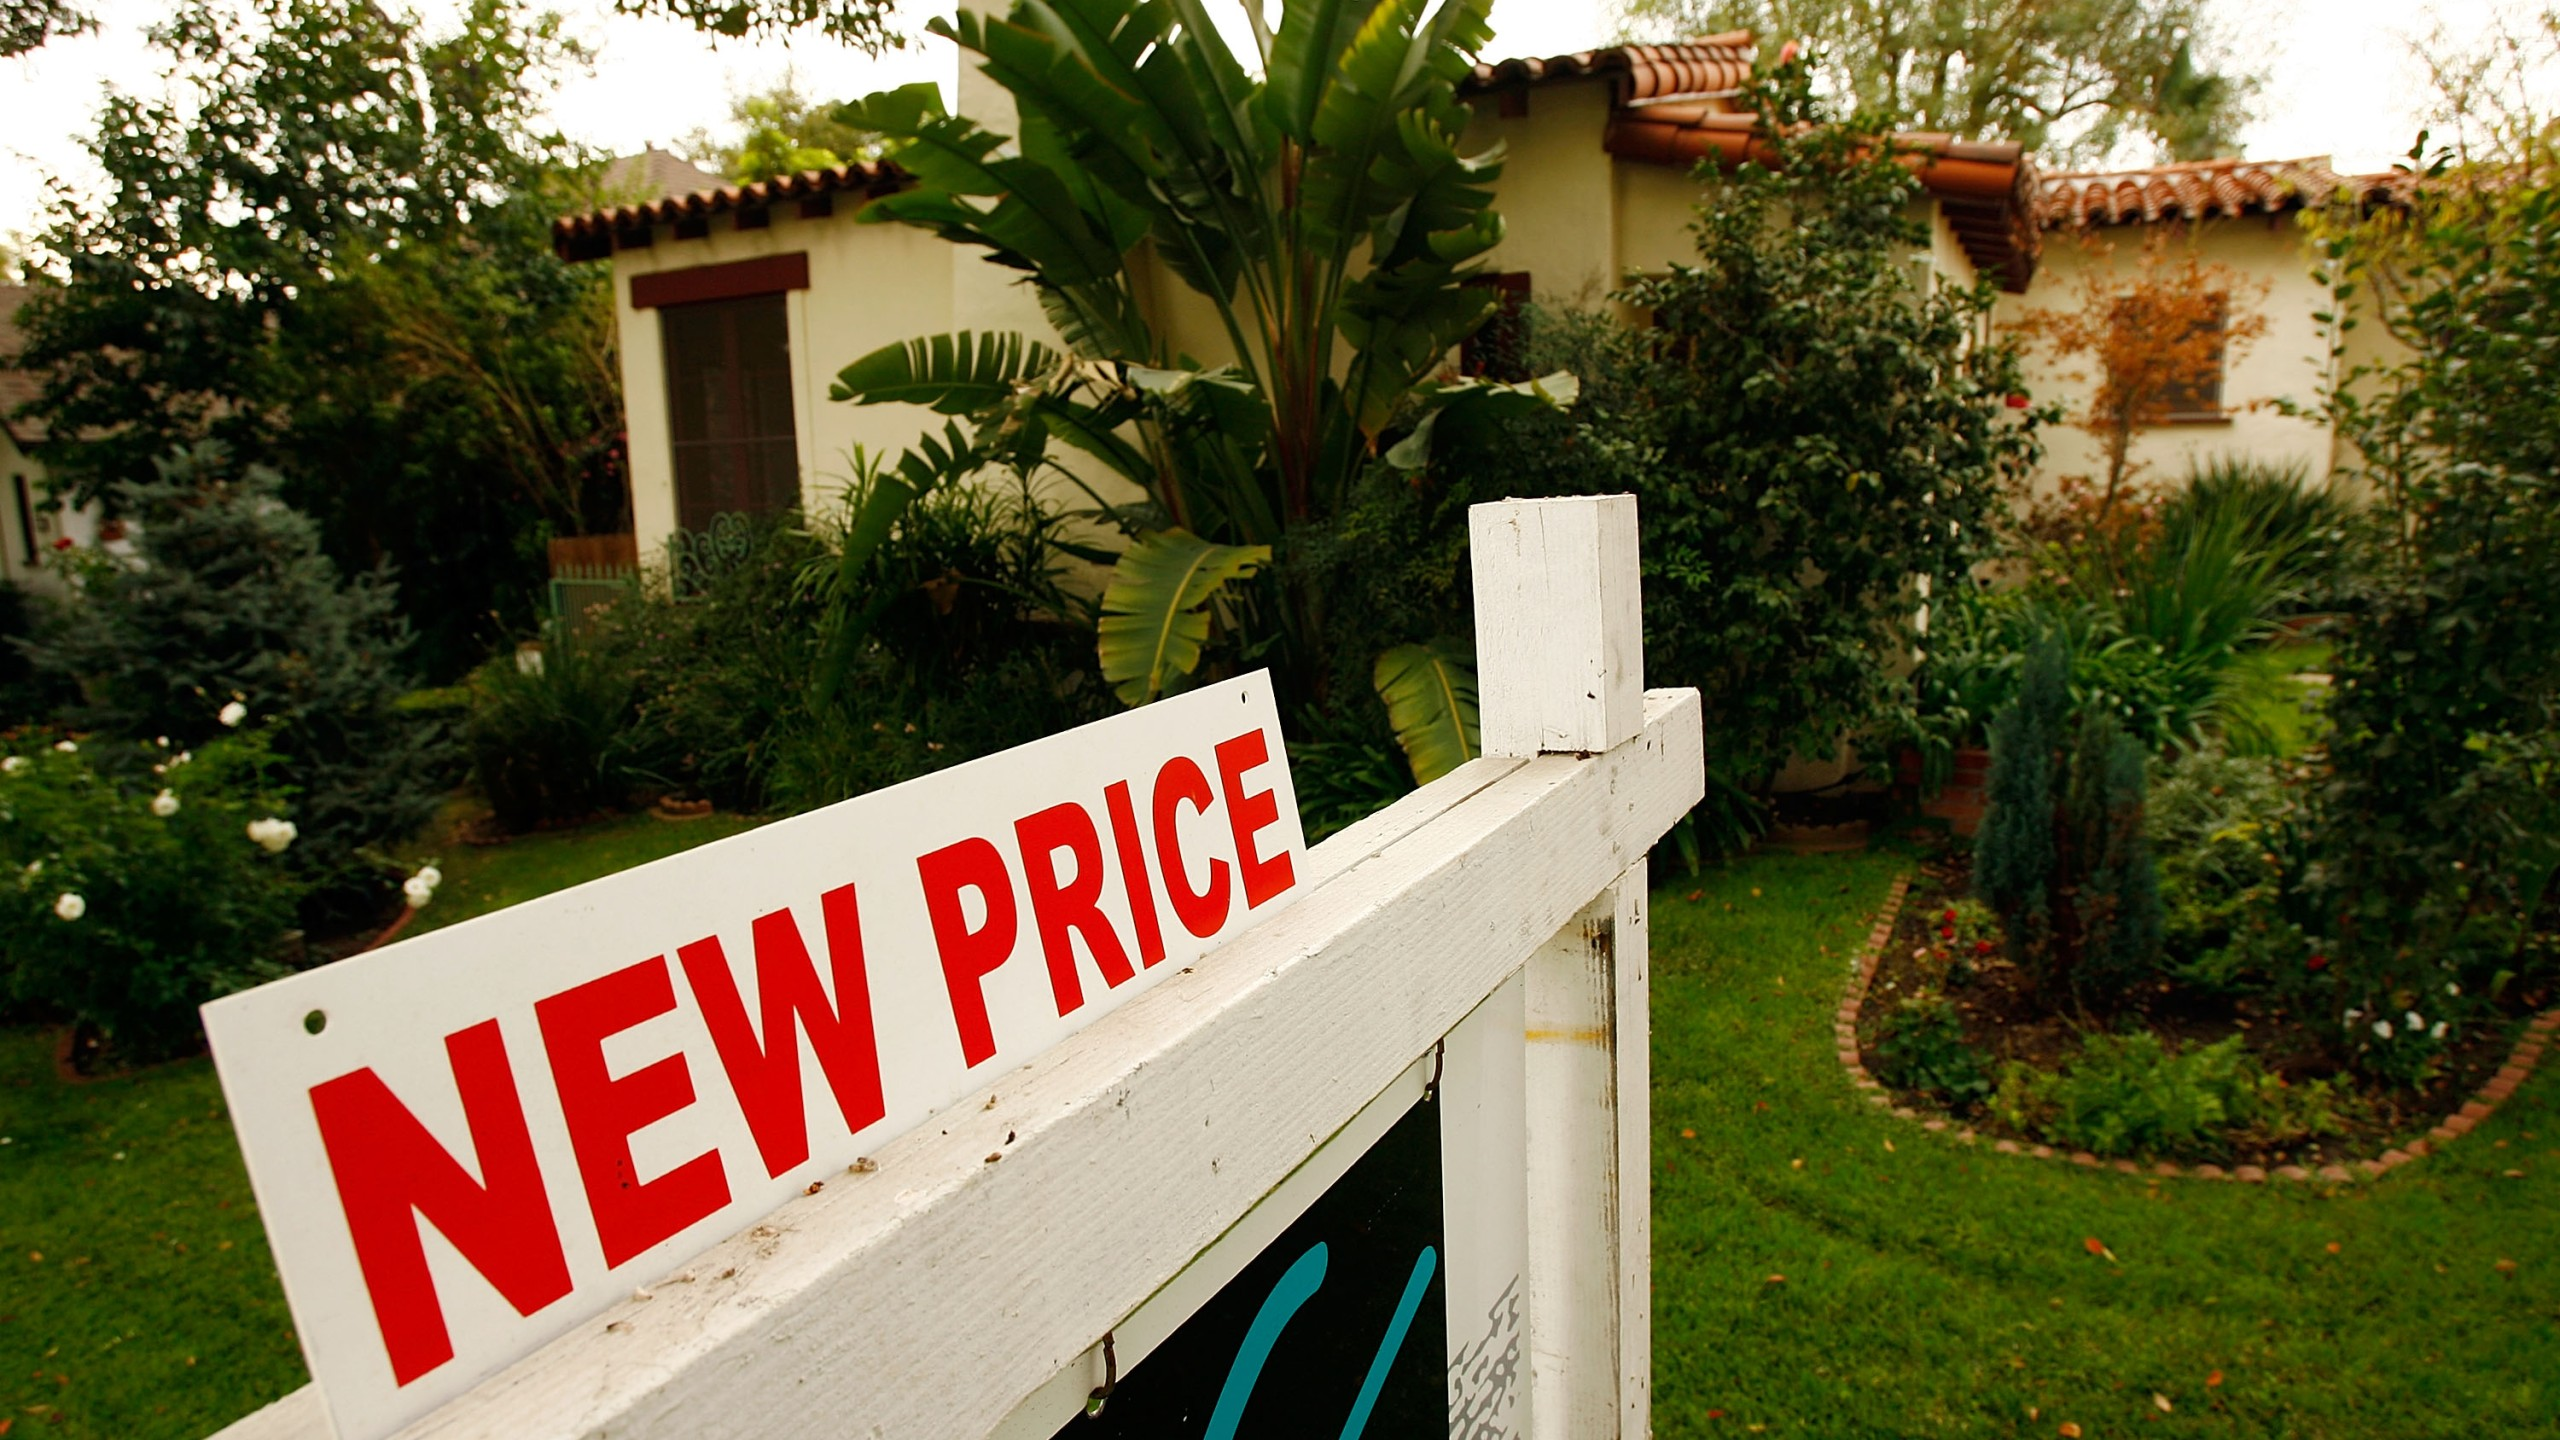 A new price sign sits in front of a house on Nov. 27, 2007 in Glendale. (Credit: David McNew/Getty Images)